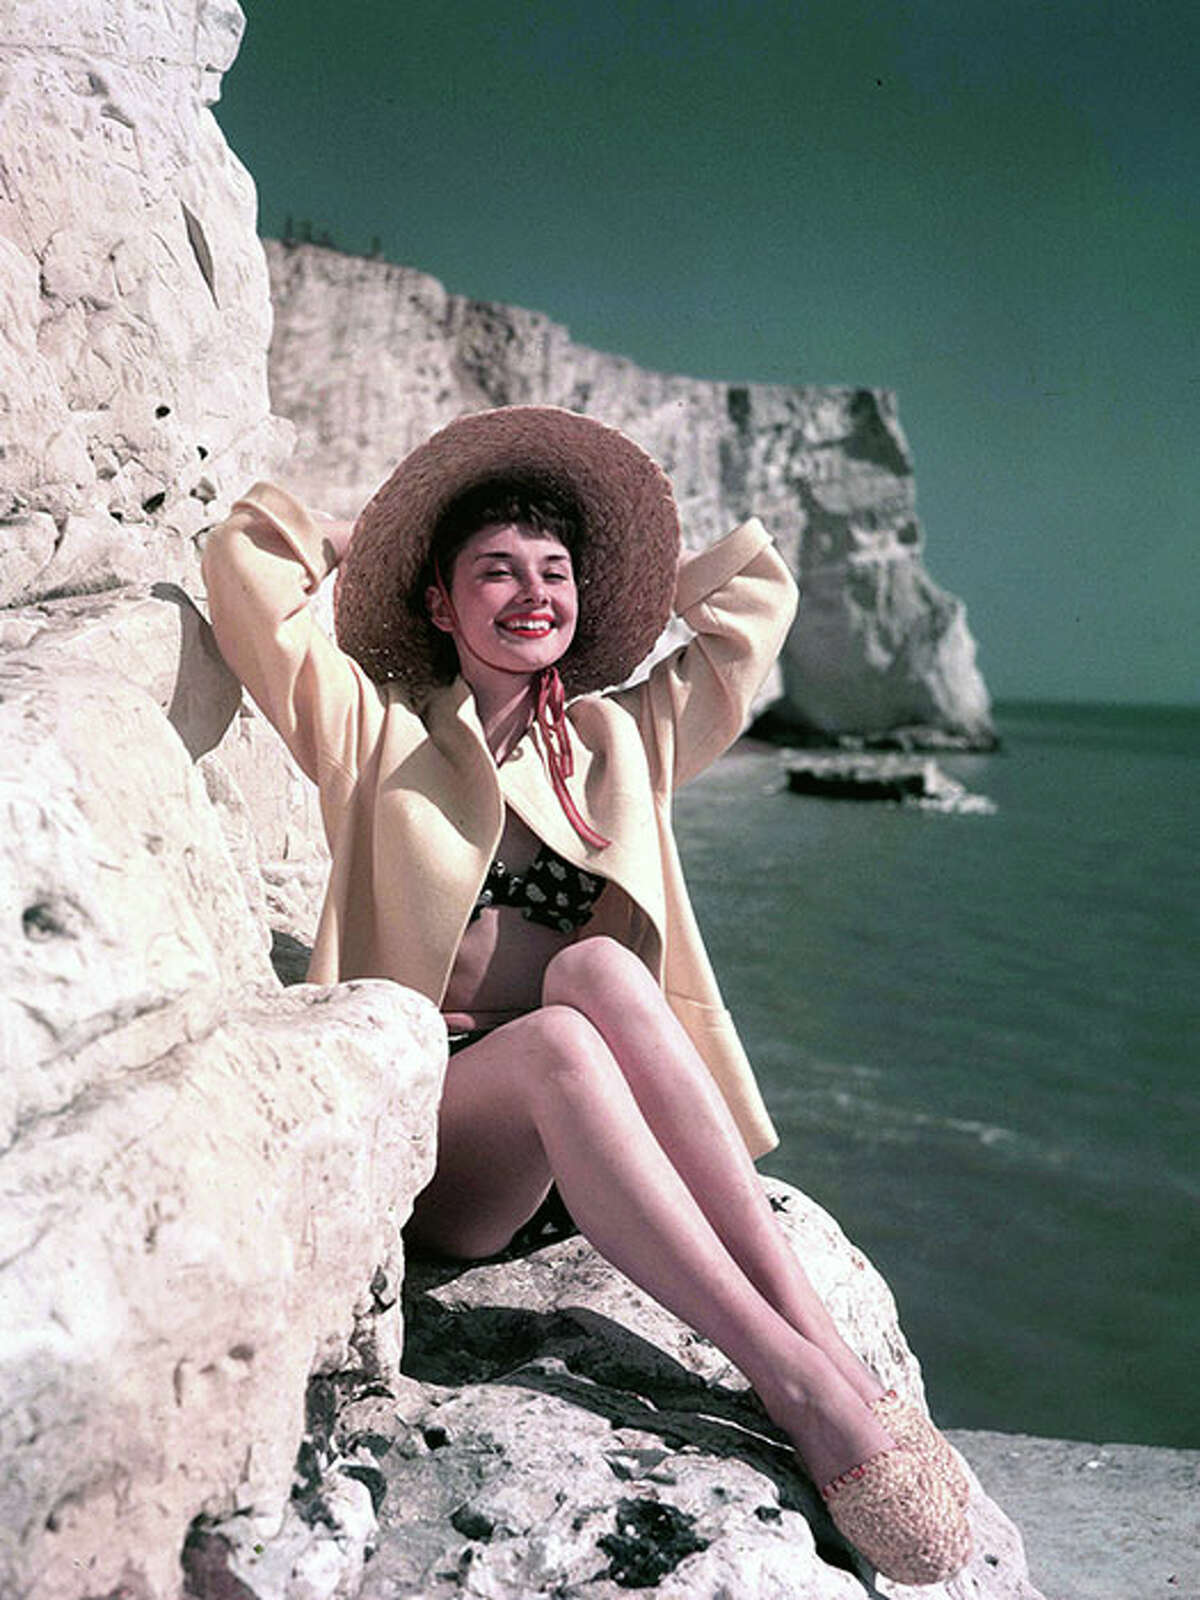 By the beach, 1951. The advantages to a wide-brim hat like Hepburn's are twofold: extra sun protection and serious chicness.